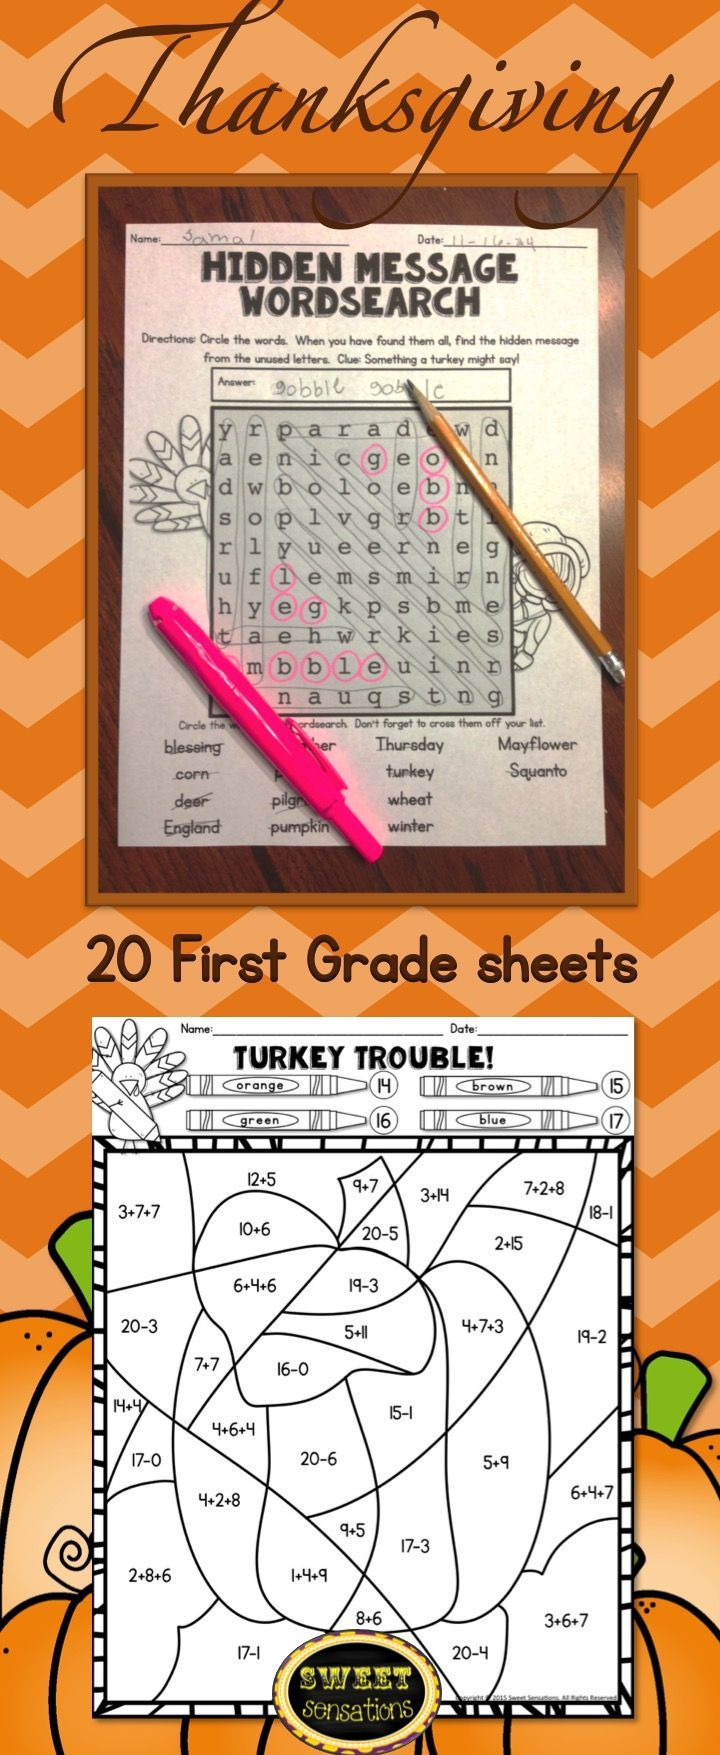 20 Sheets For First Grade 10 Ela And 10 Math With A Thanksgiving Theme Use For Morning Work Hom School Celebration Thanksgiving Worksheets First Grade Math [ 1755 x 720 Pixel ]